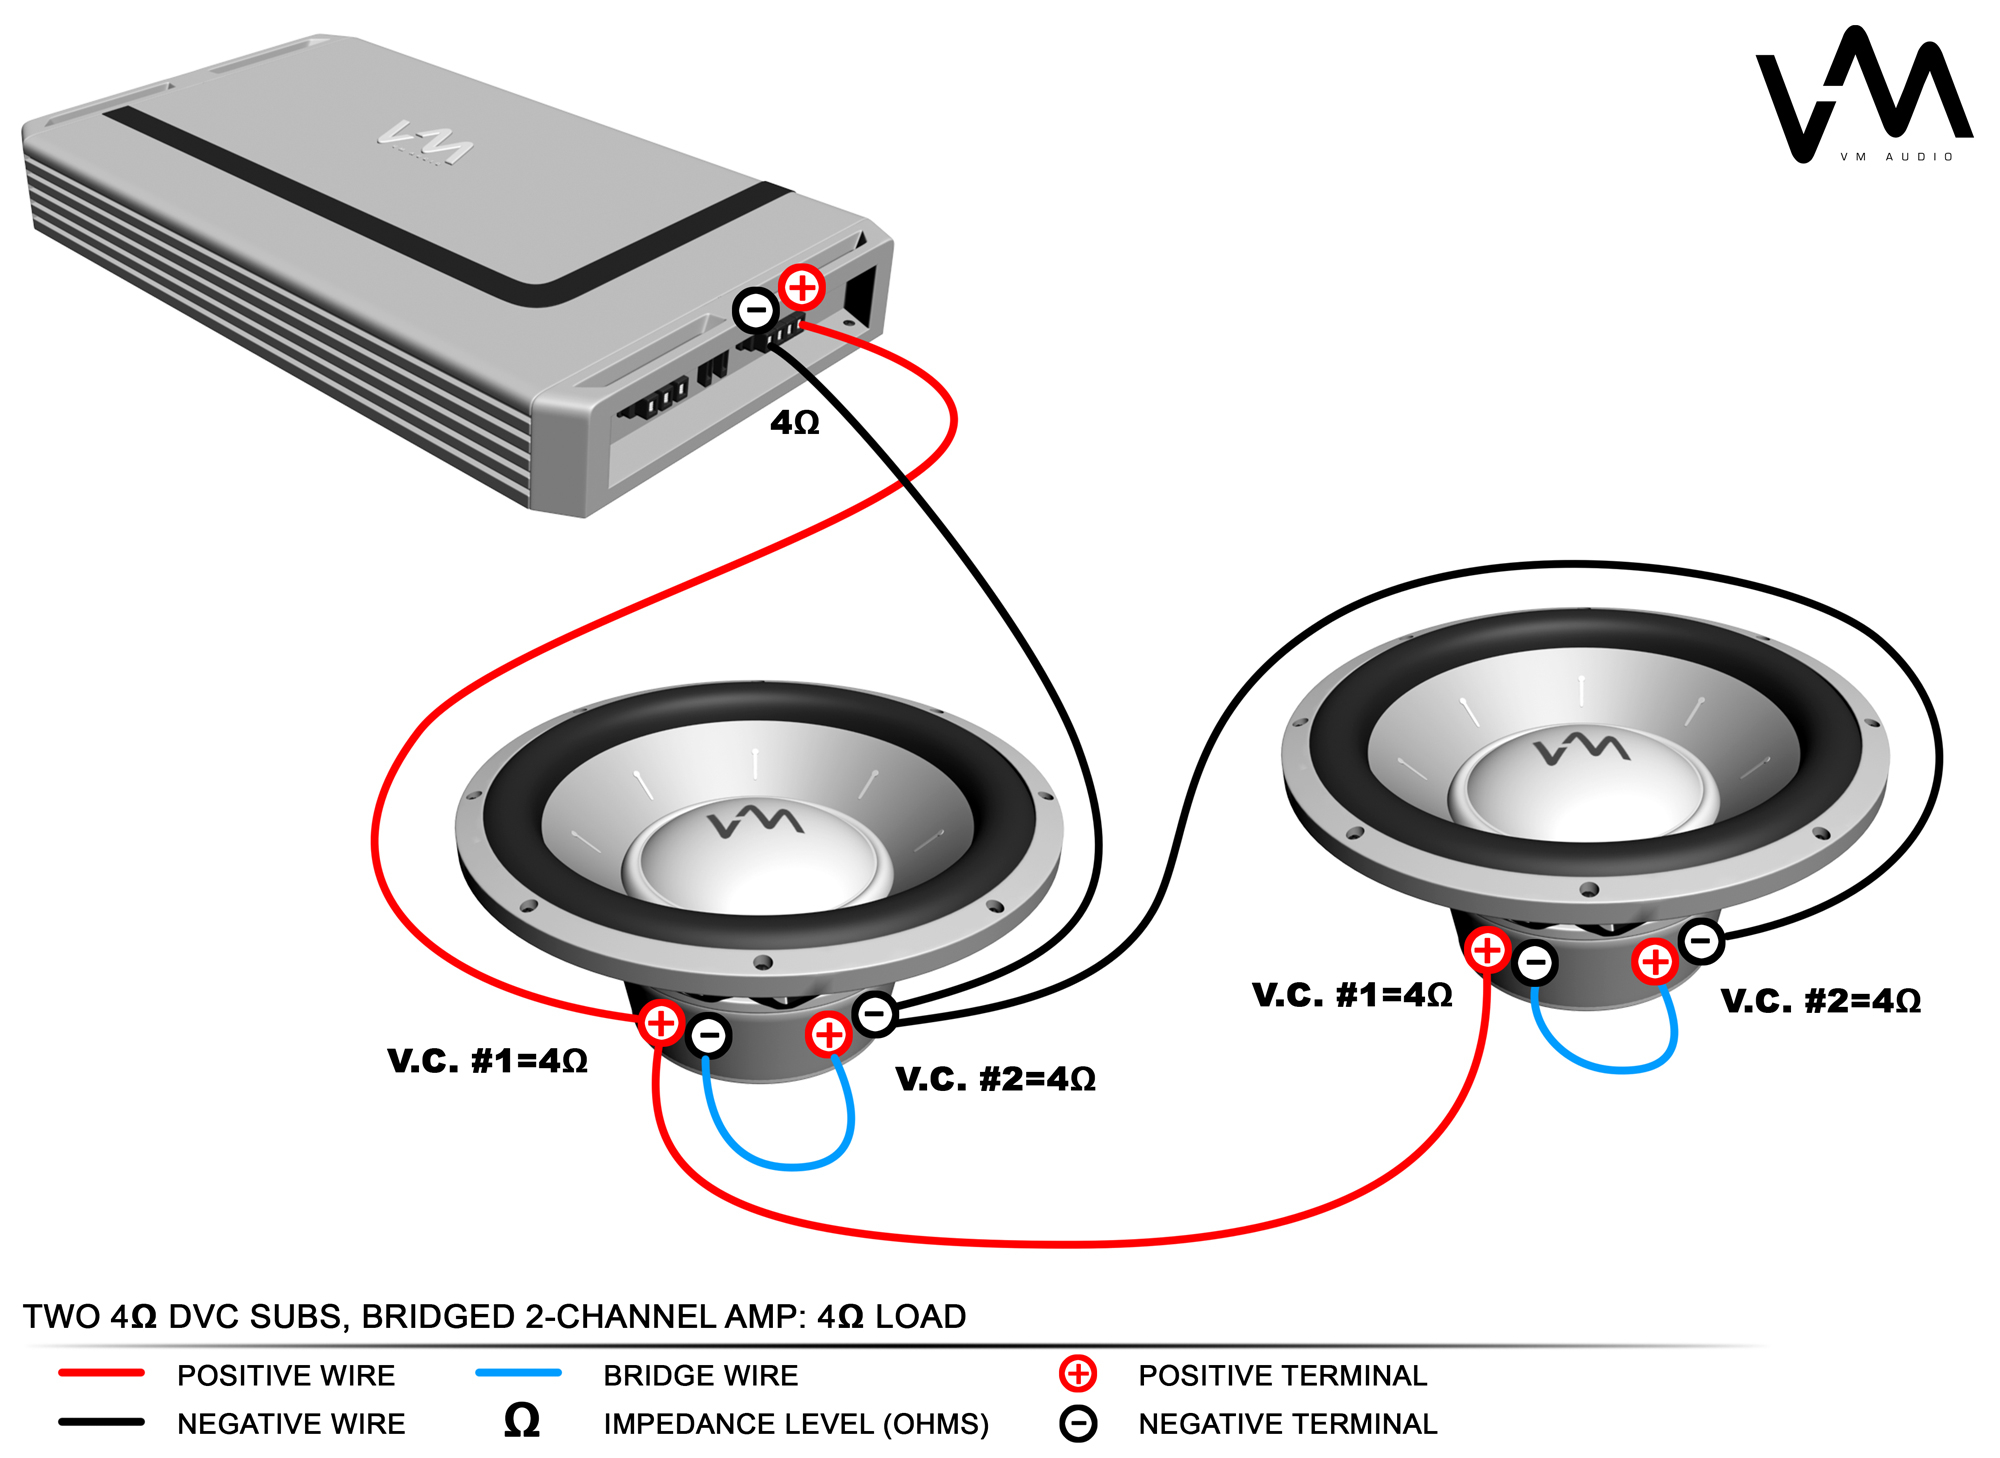 polk audio subwoofer wiring diagram Download-Best way to hook up two subs to one amp 16-d